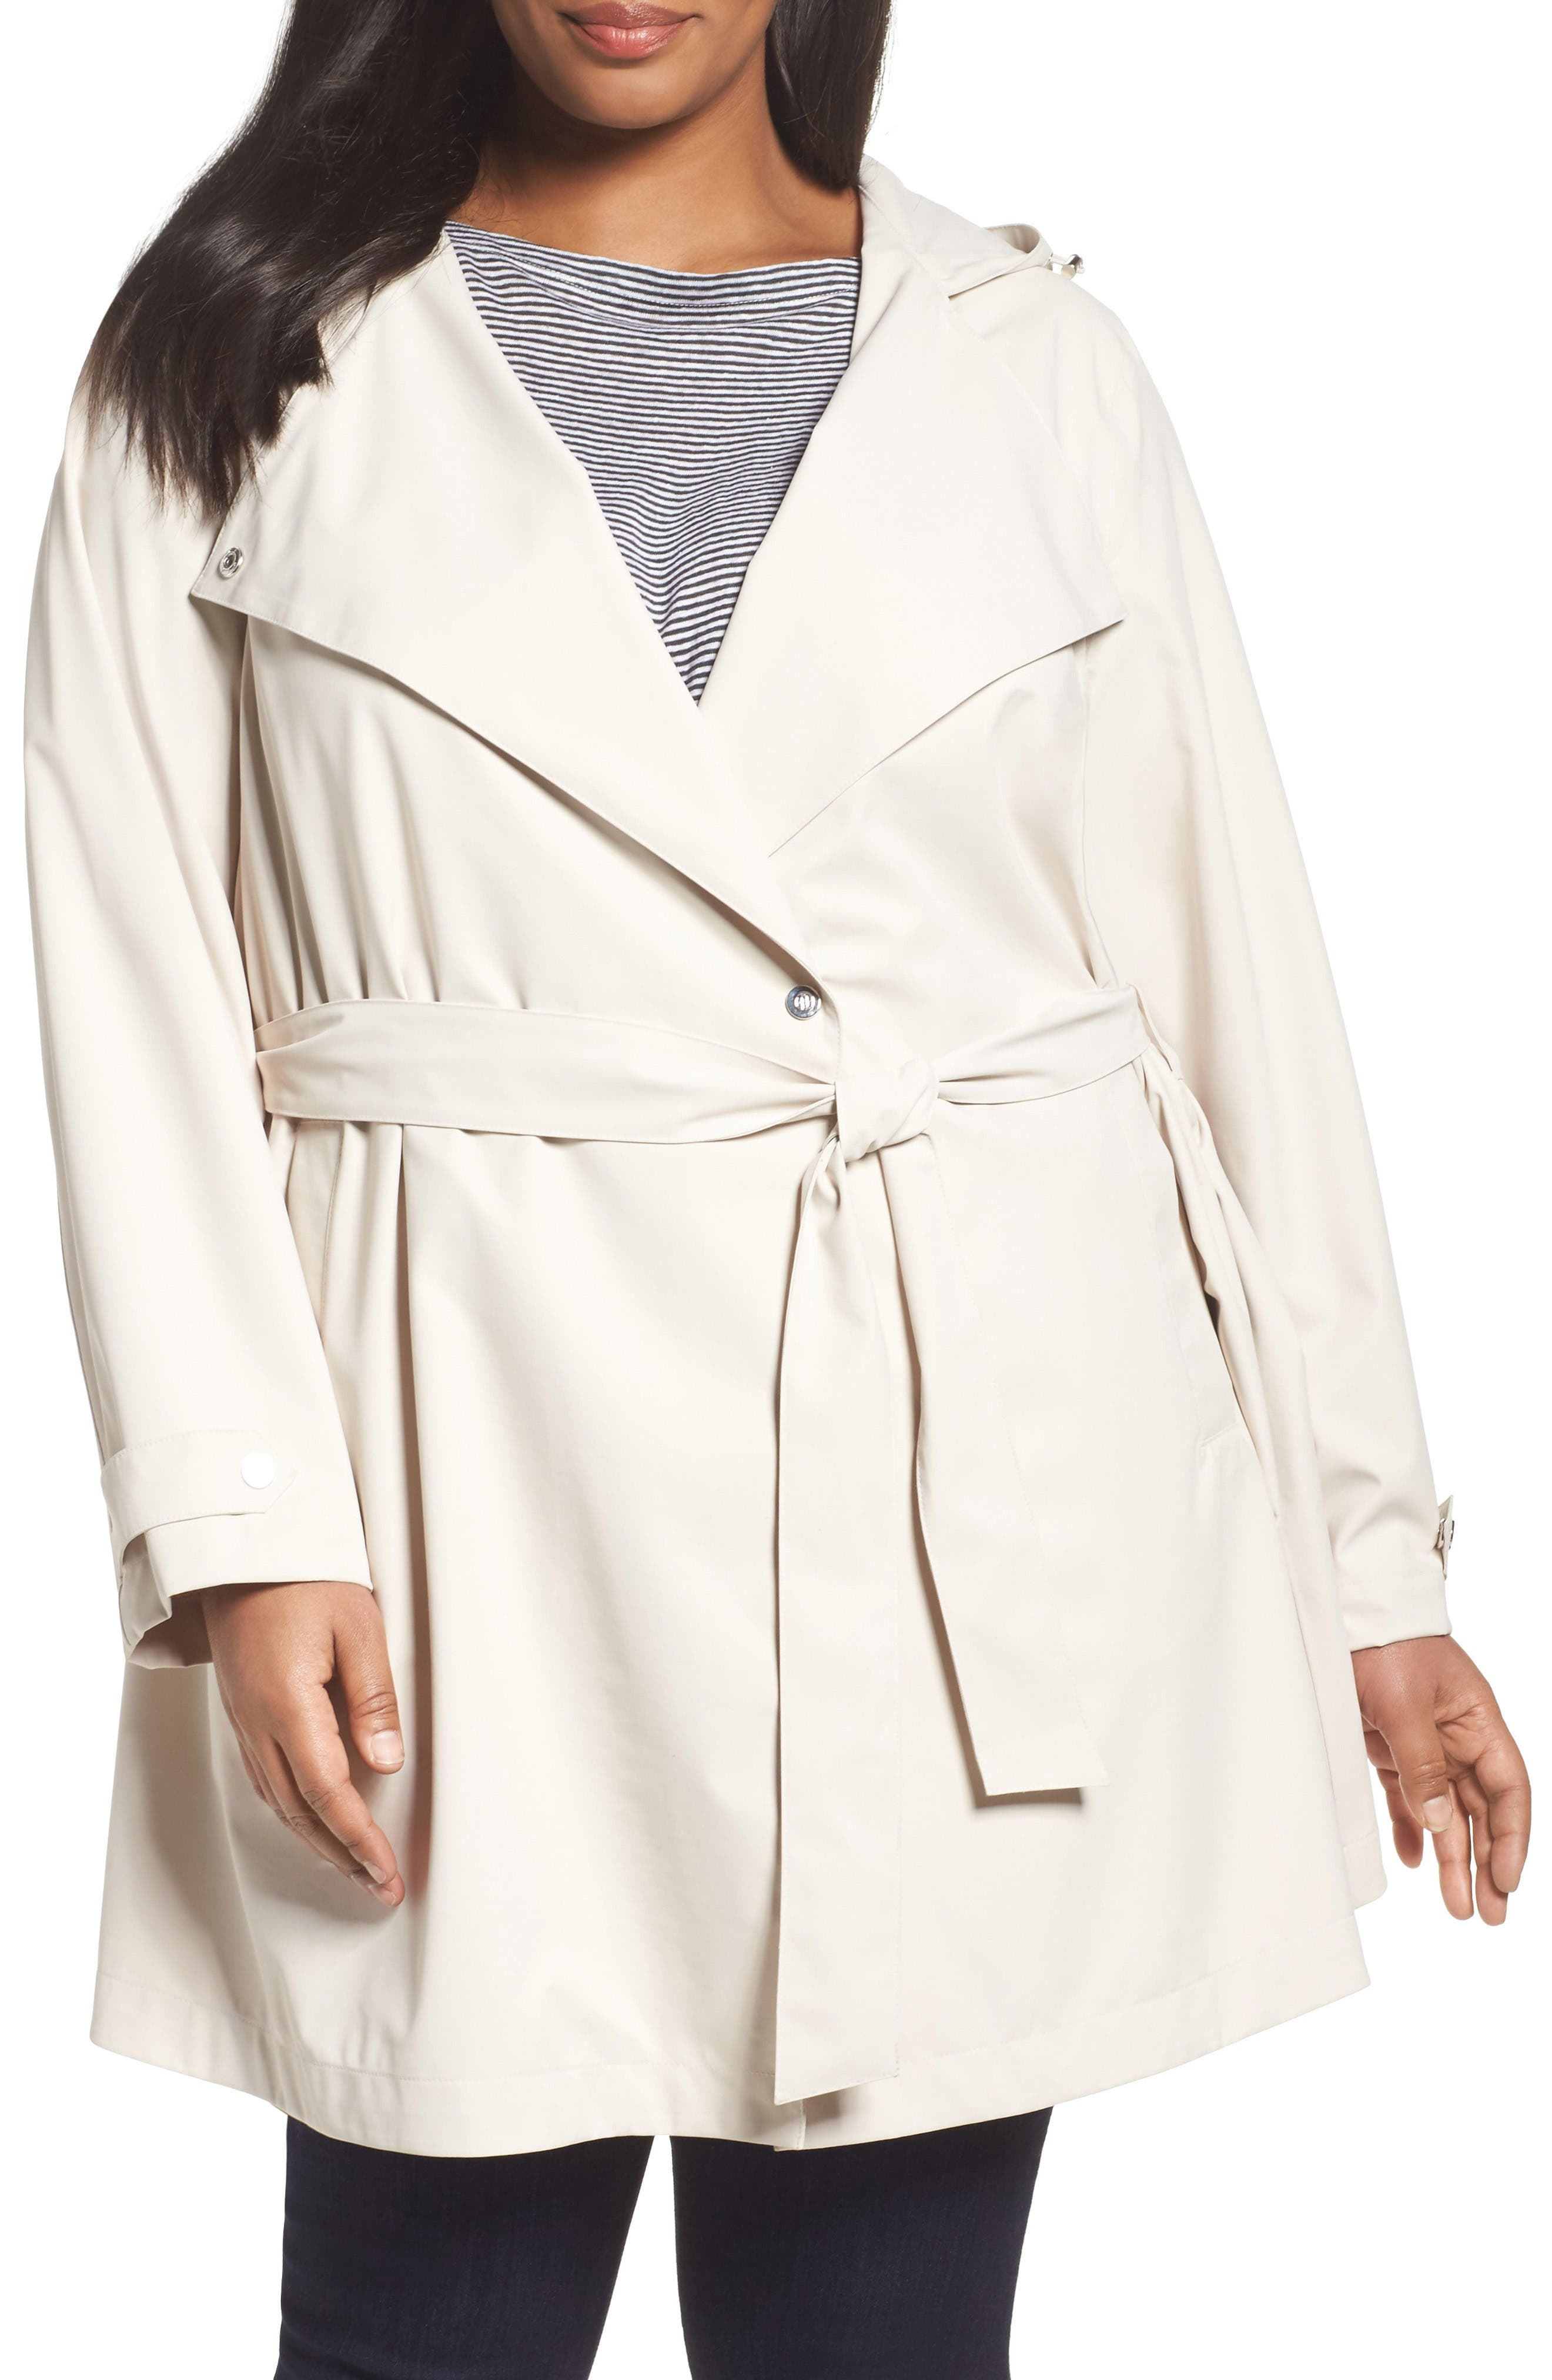 Main Image - Bernardo Breathable Microfiber Trench Coat (Plus Size)